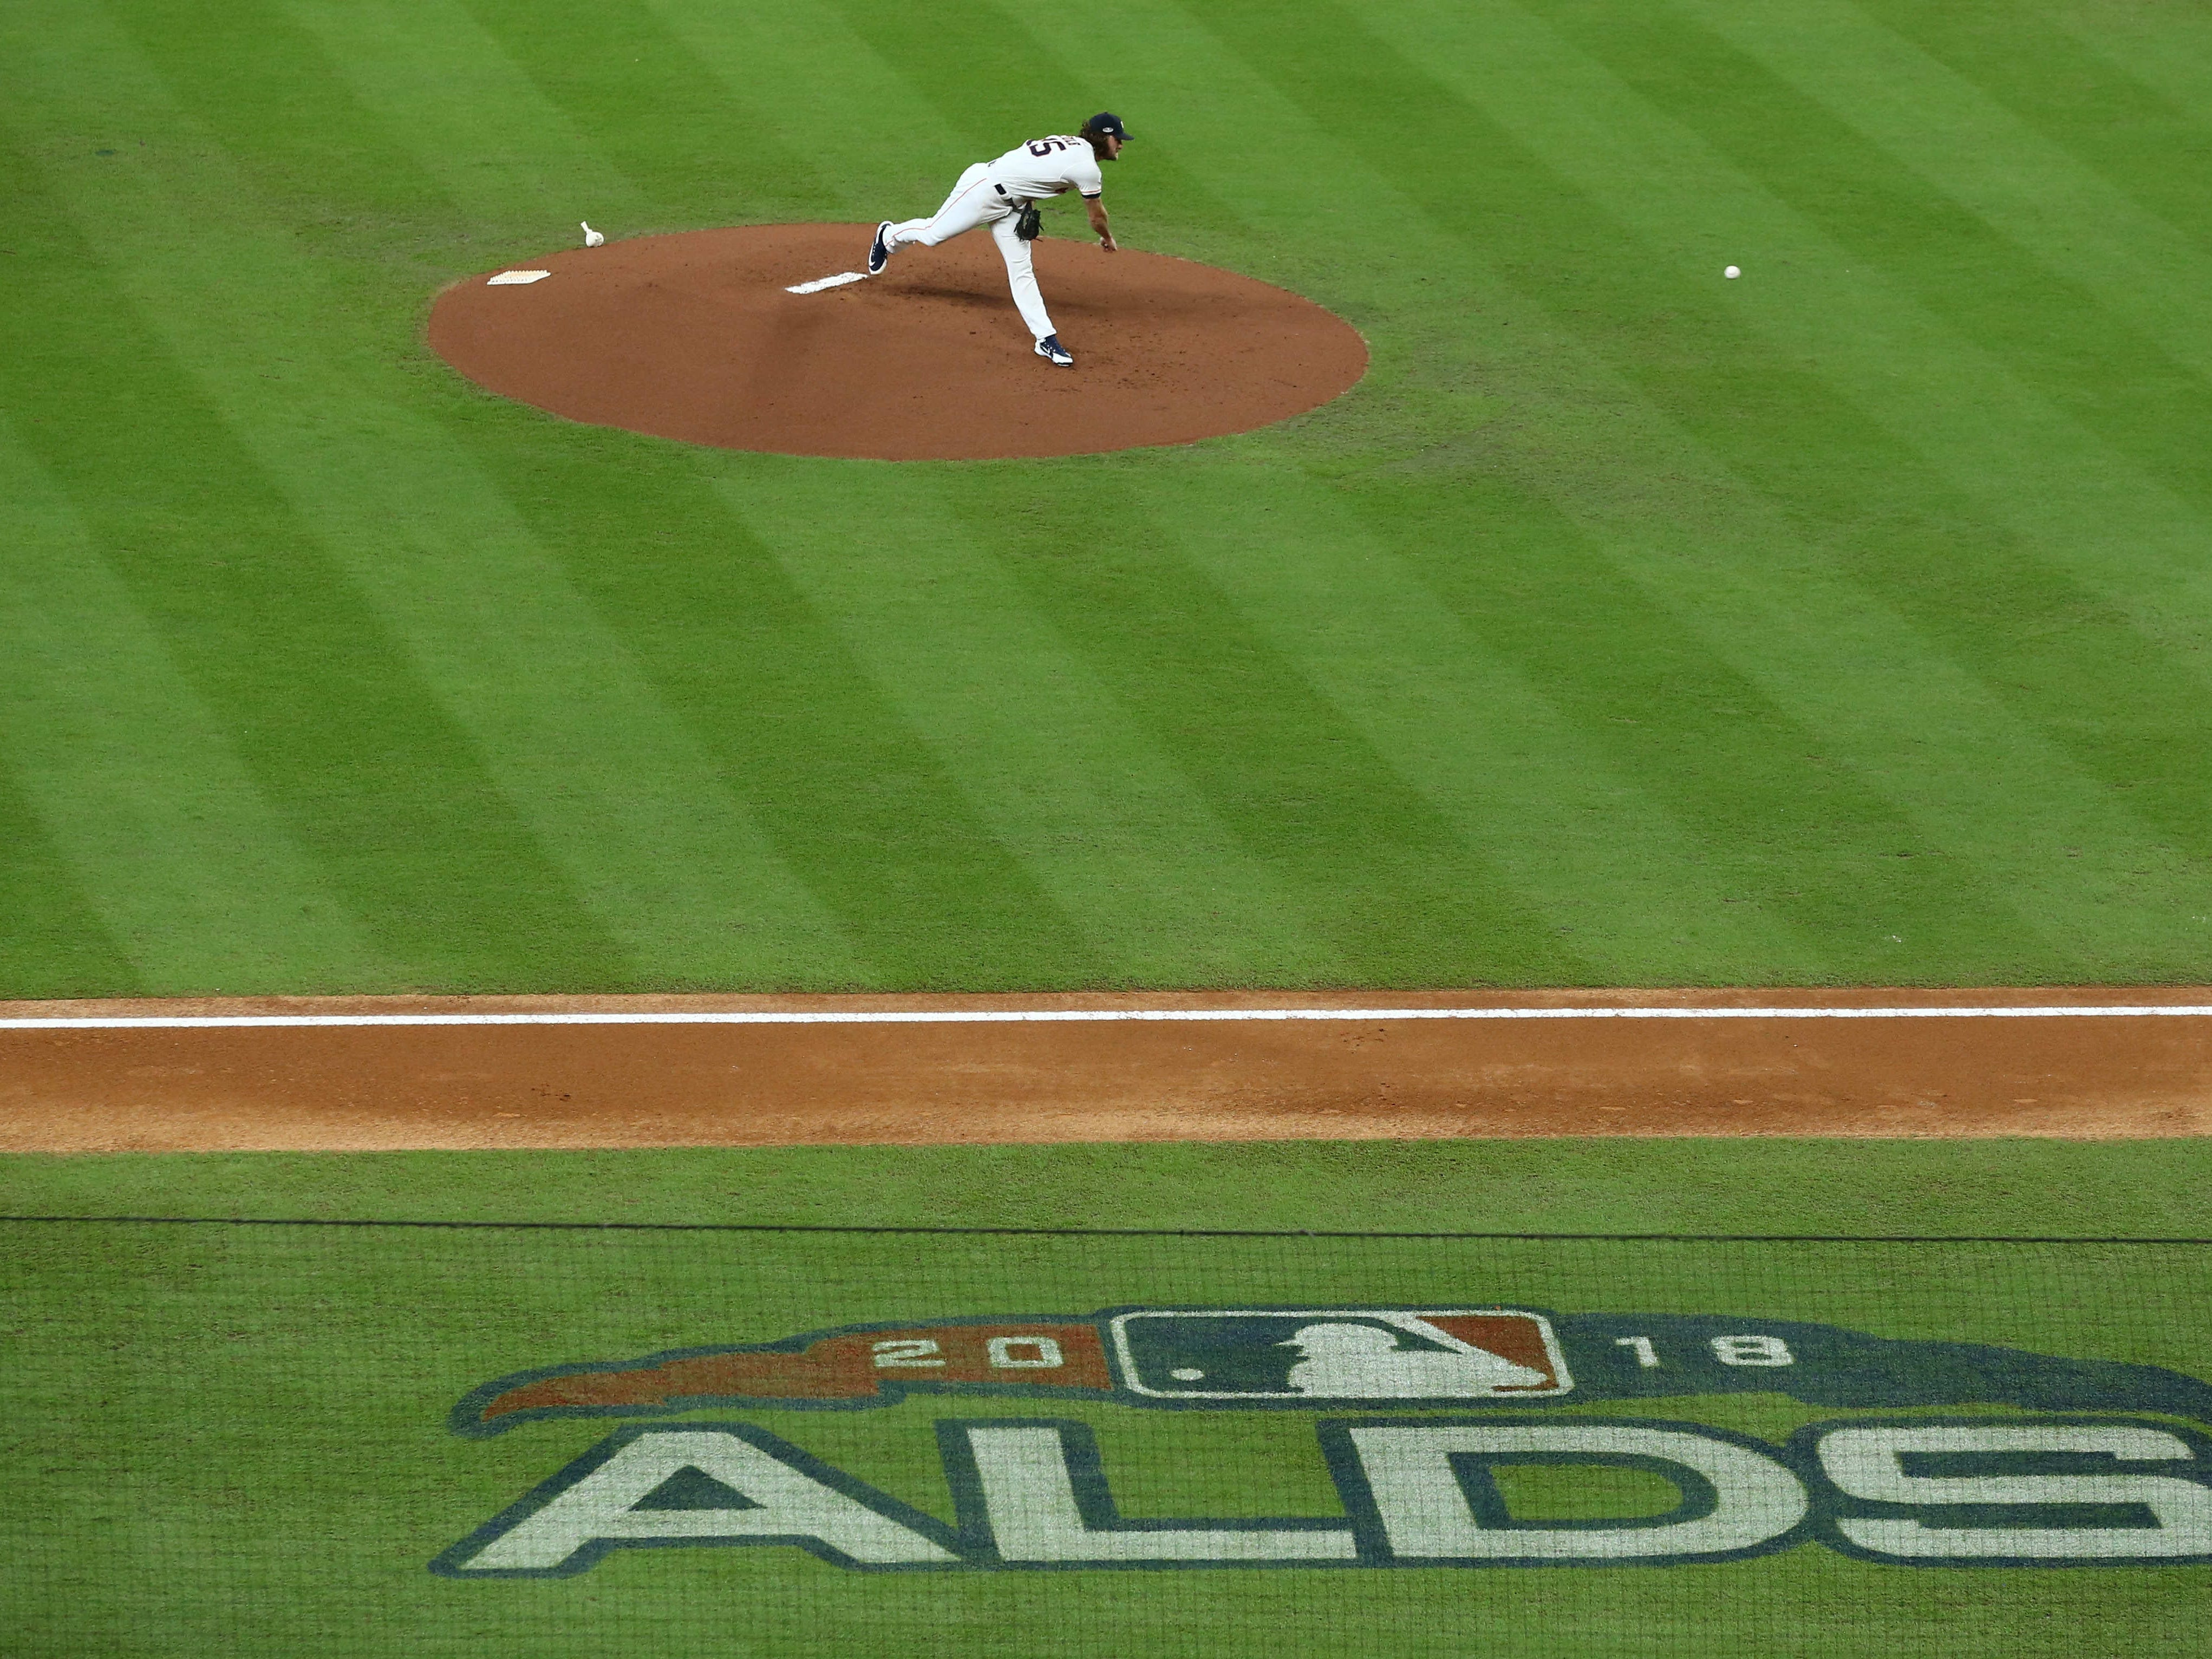 ALDS Game 2: Astros starting pitcher Gerrit Cole delivers a pitch.